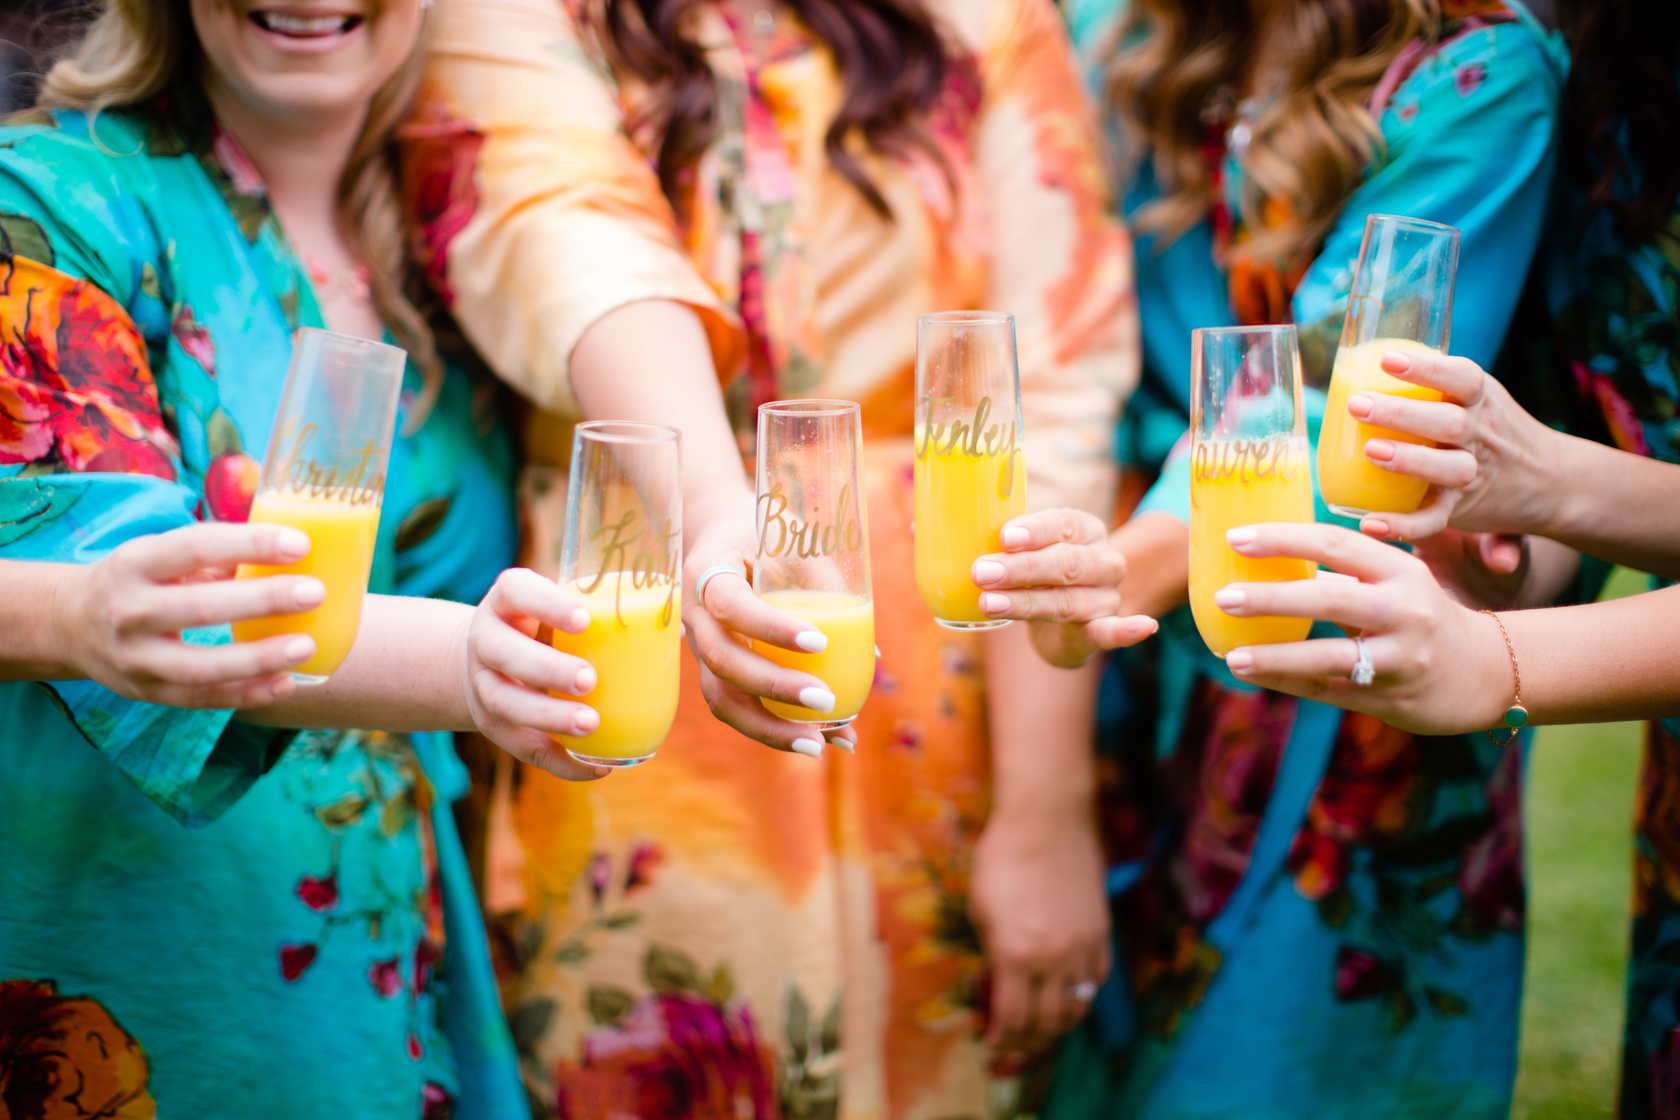 The_Printed_Palette_Wedding_at_Calamigos_Ranch_030.jpg